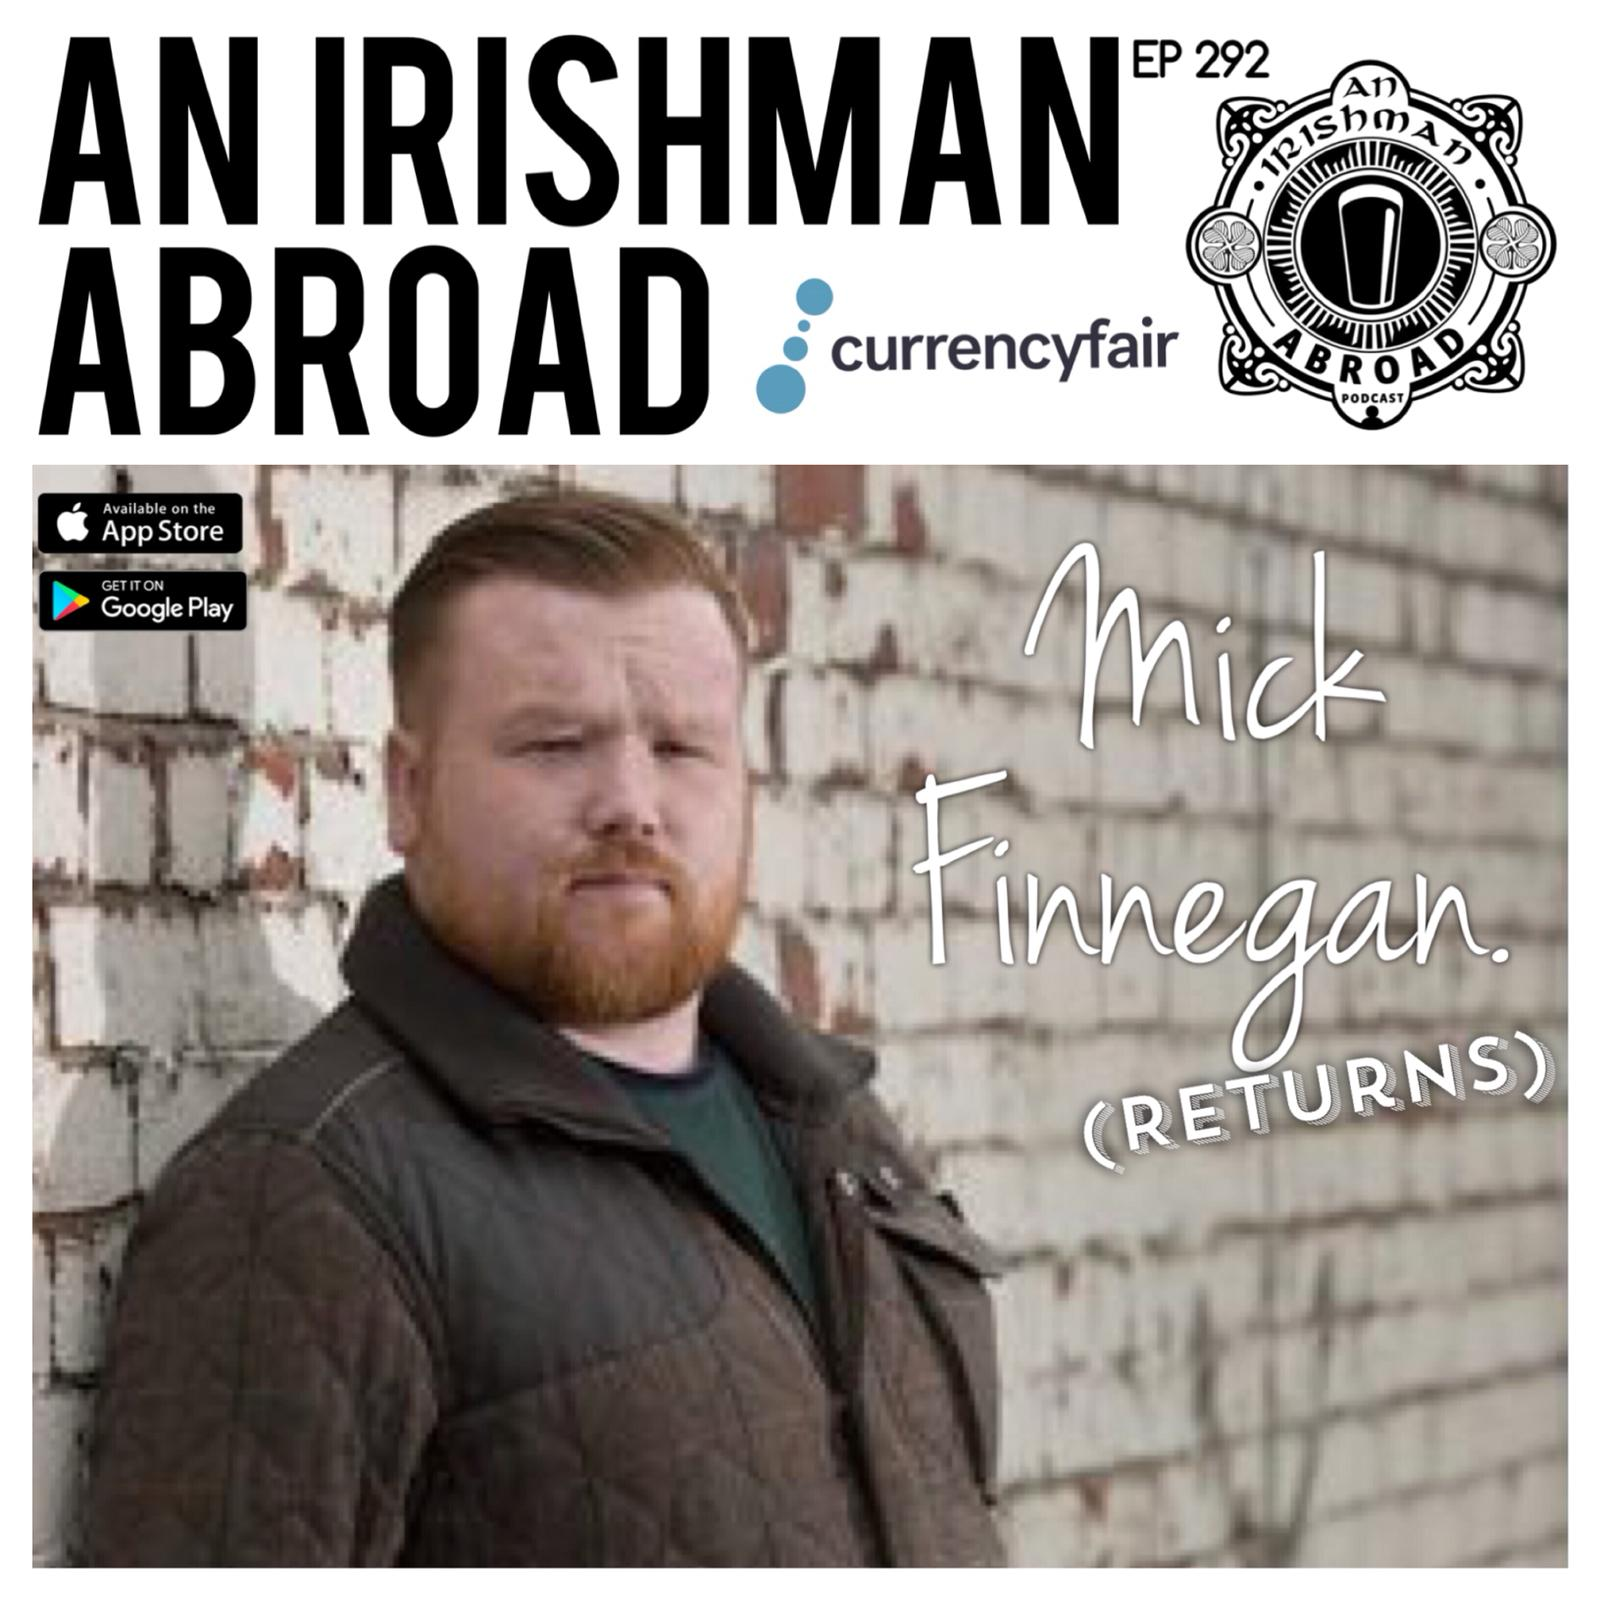 Mick Finnegan (Returns): Episode 292